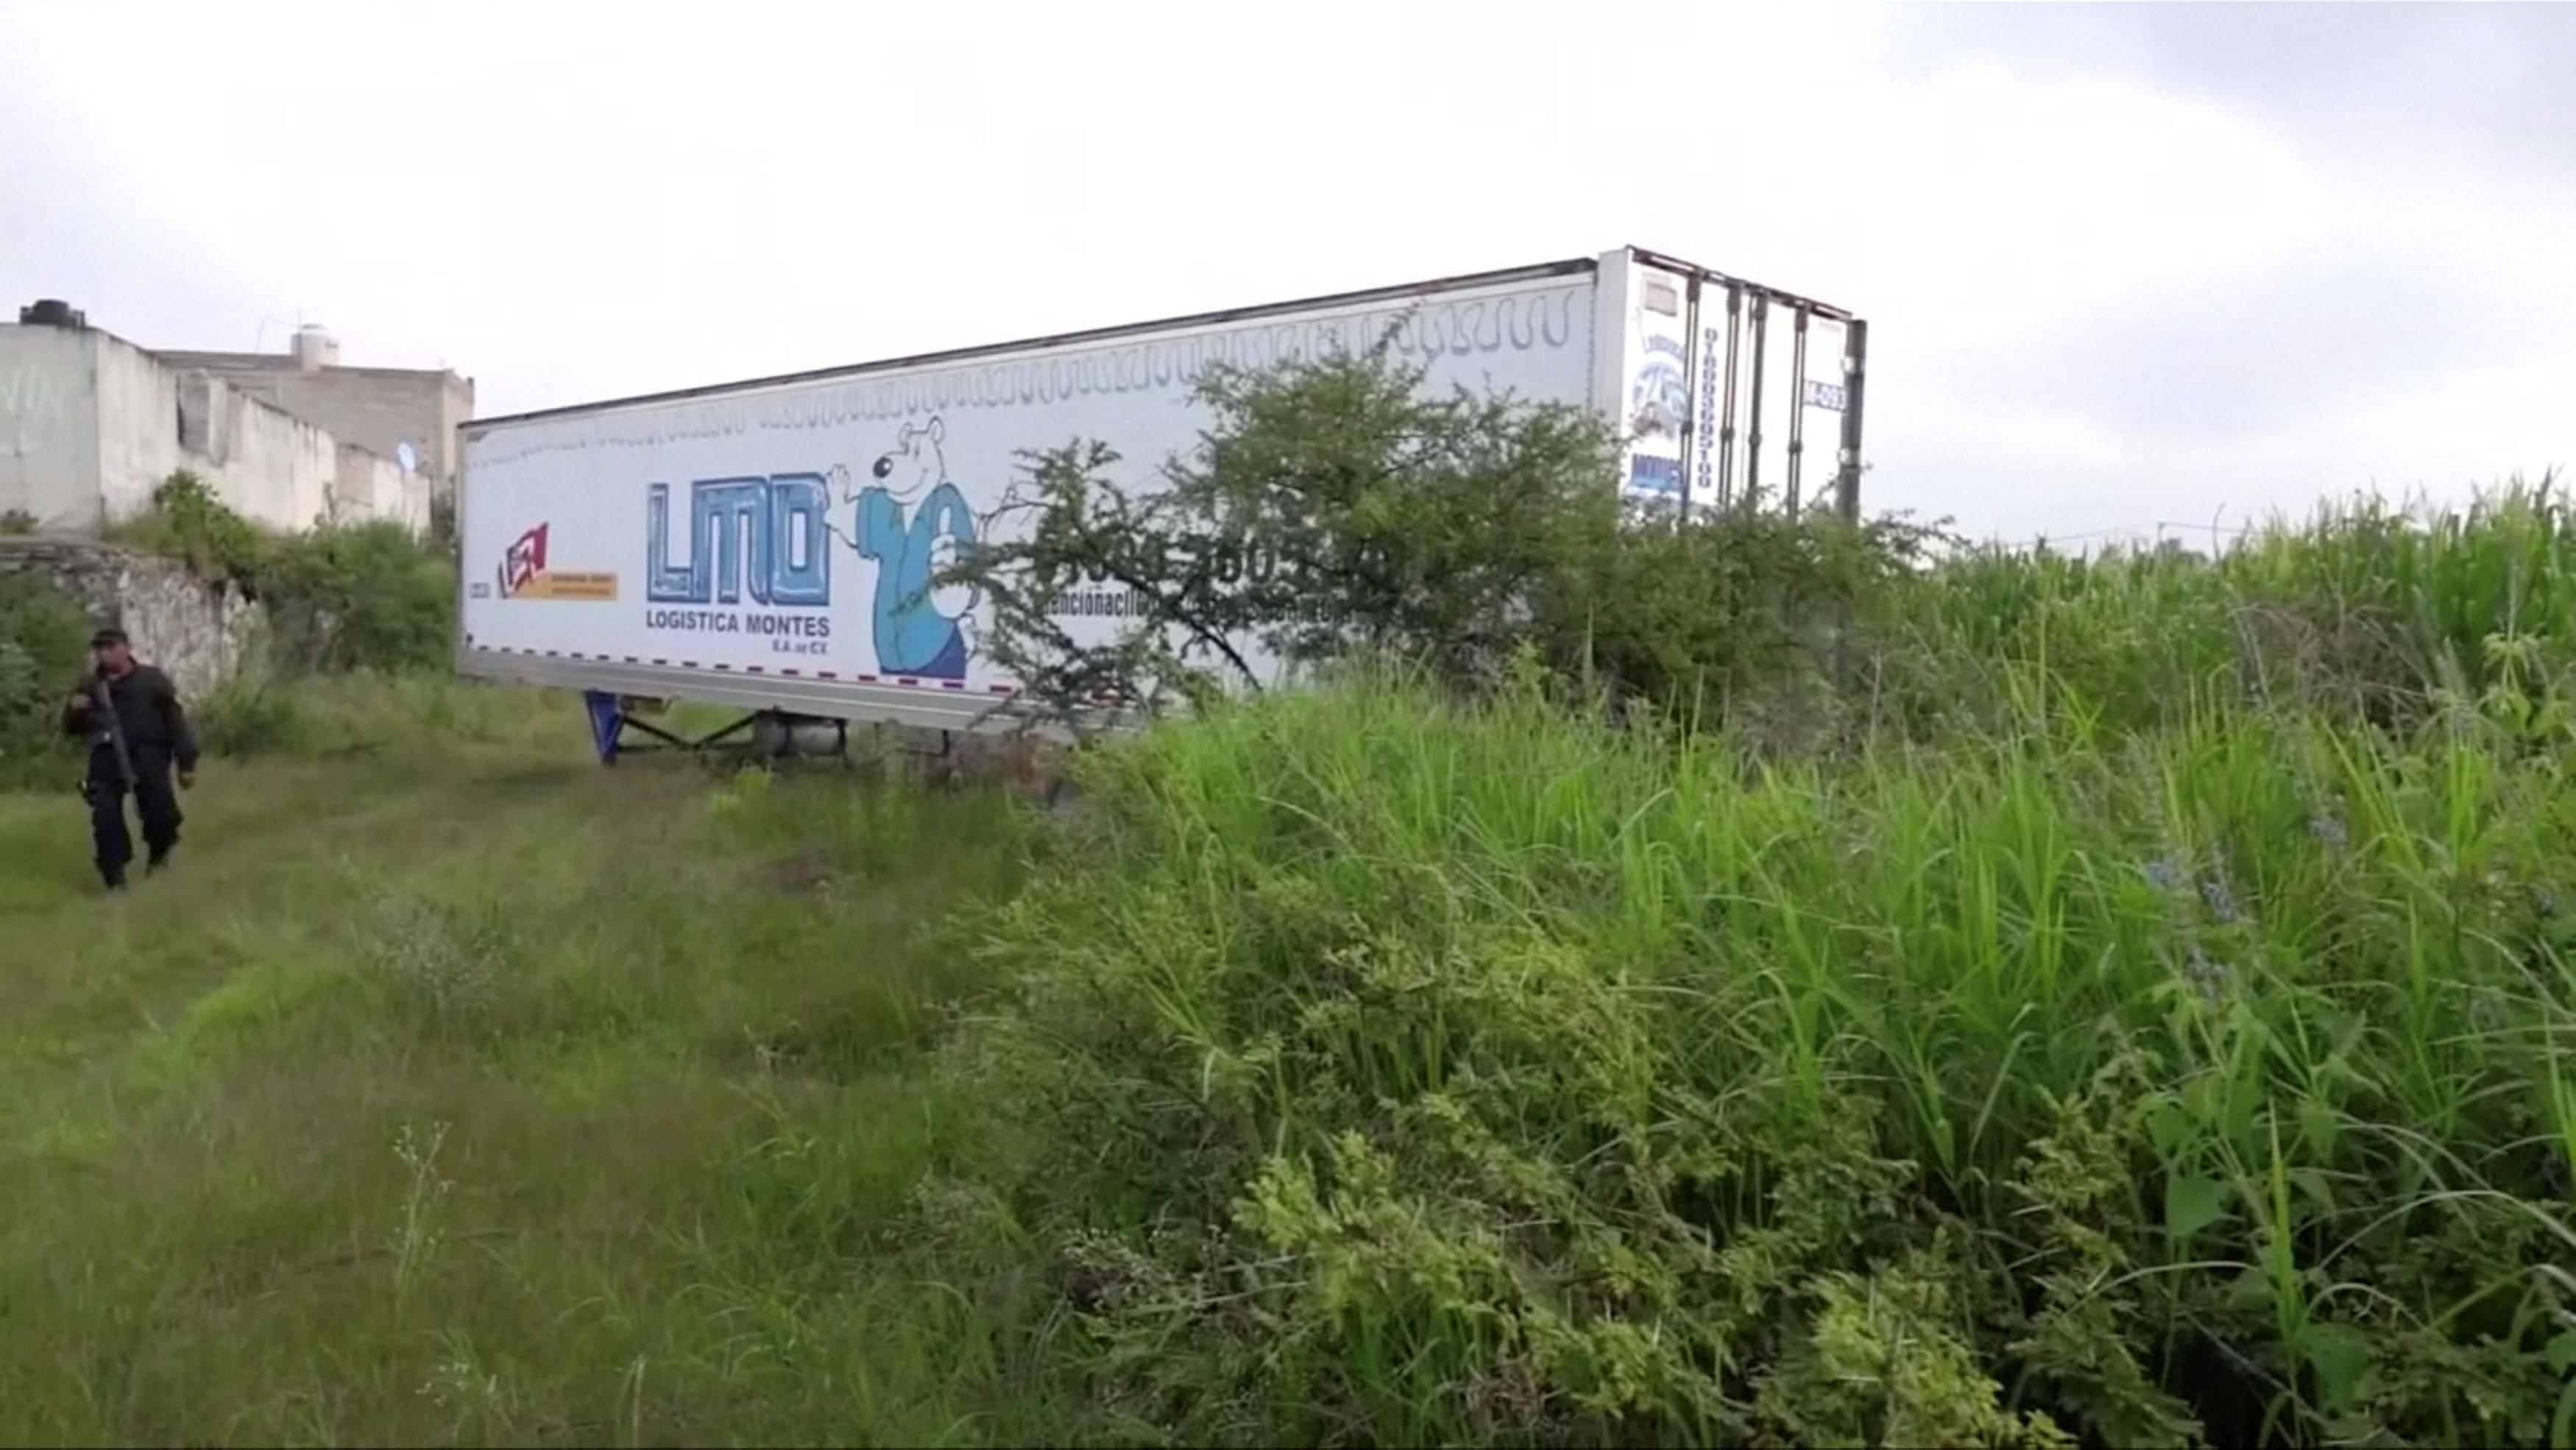 A police officer walks past an abandoned trailer full of bodies in Tlajomulco de Zuniga, Jalisco, Mexico September 15, 2018 in this still image taken from a video obtained September 17, 2018.  TV/via